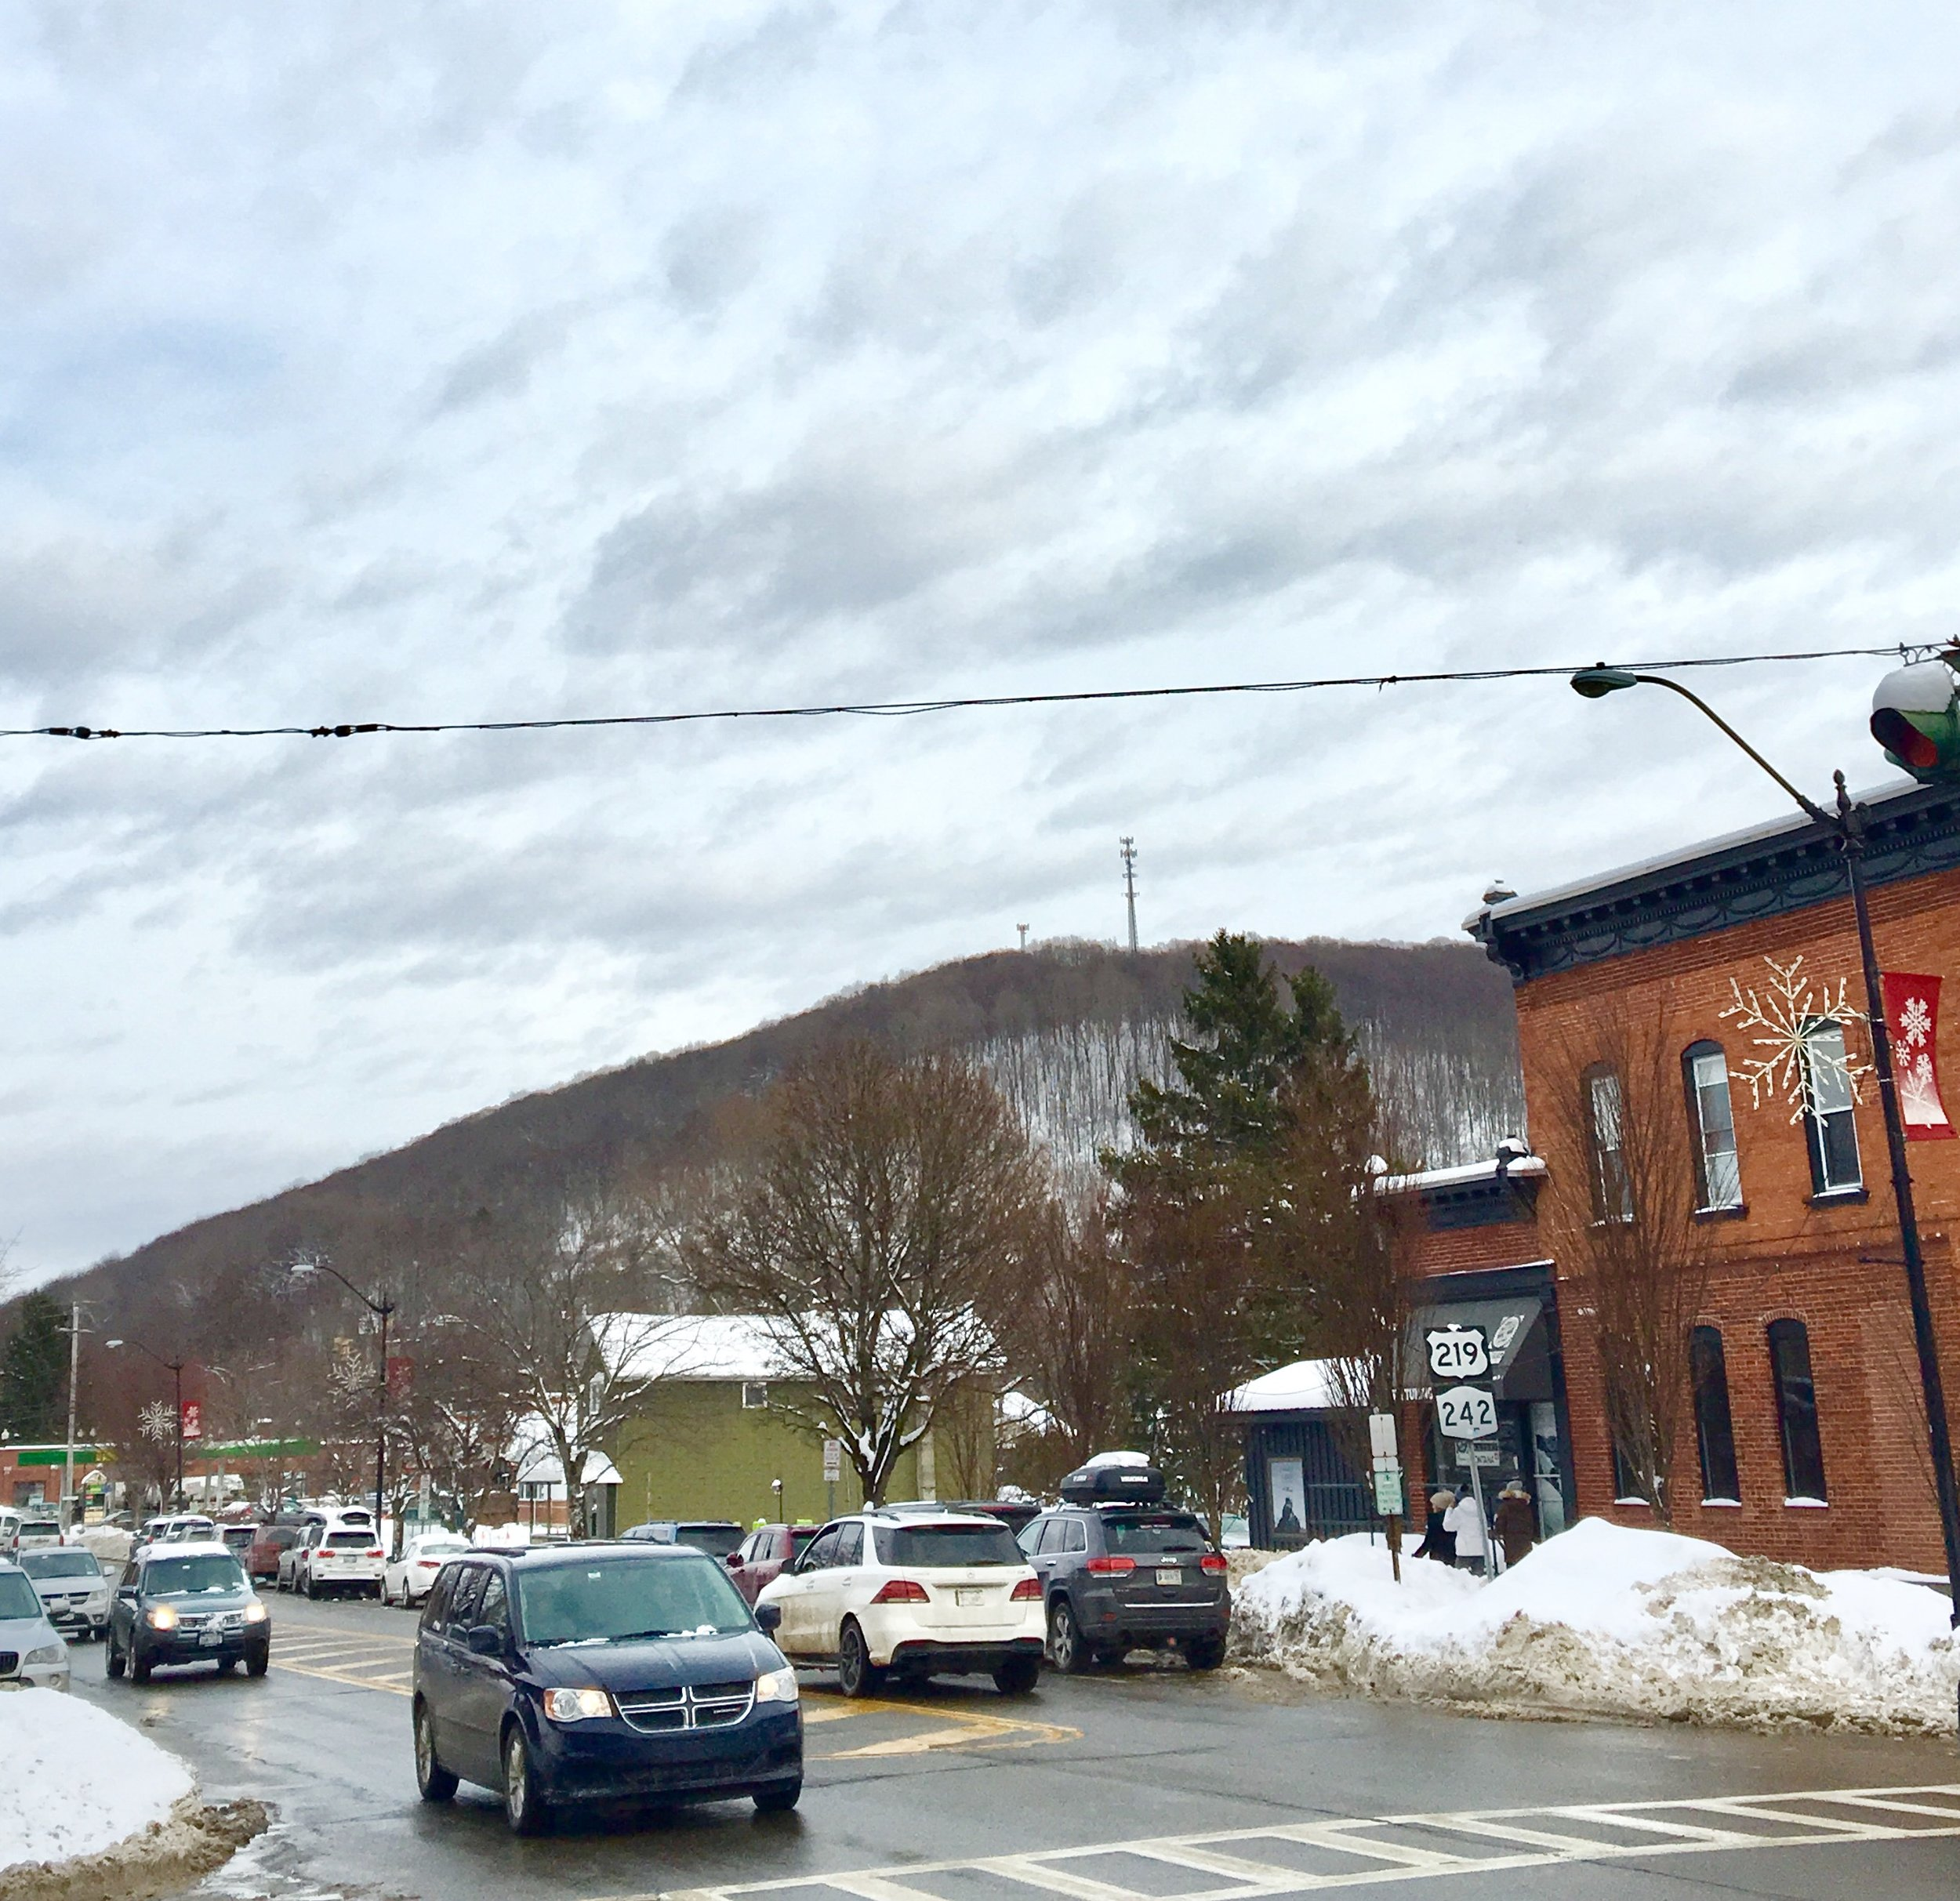 At the center of Ellicottville